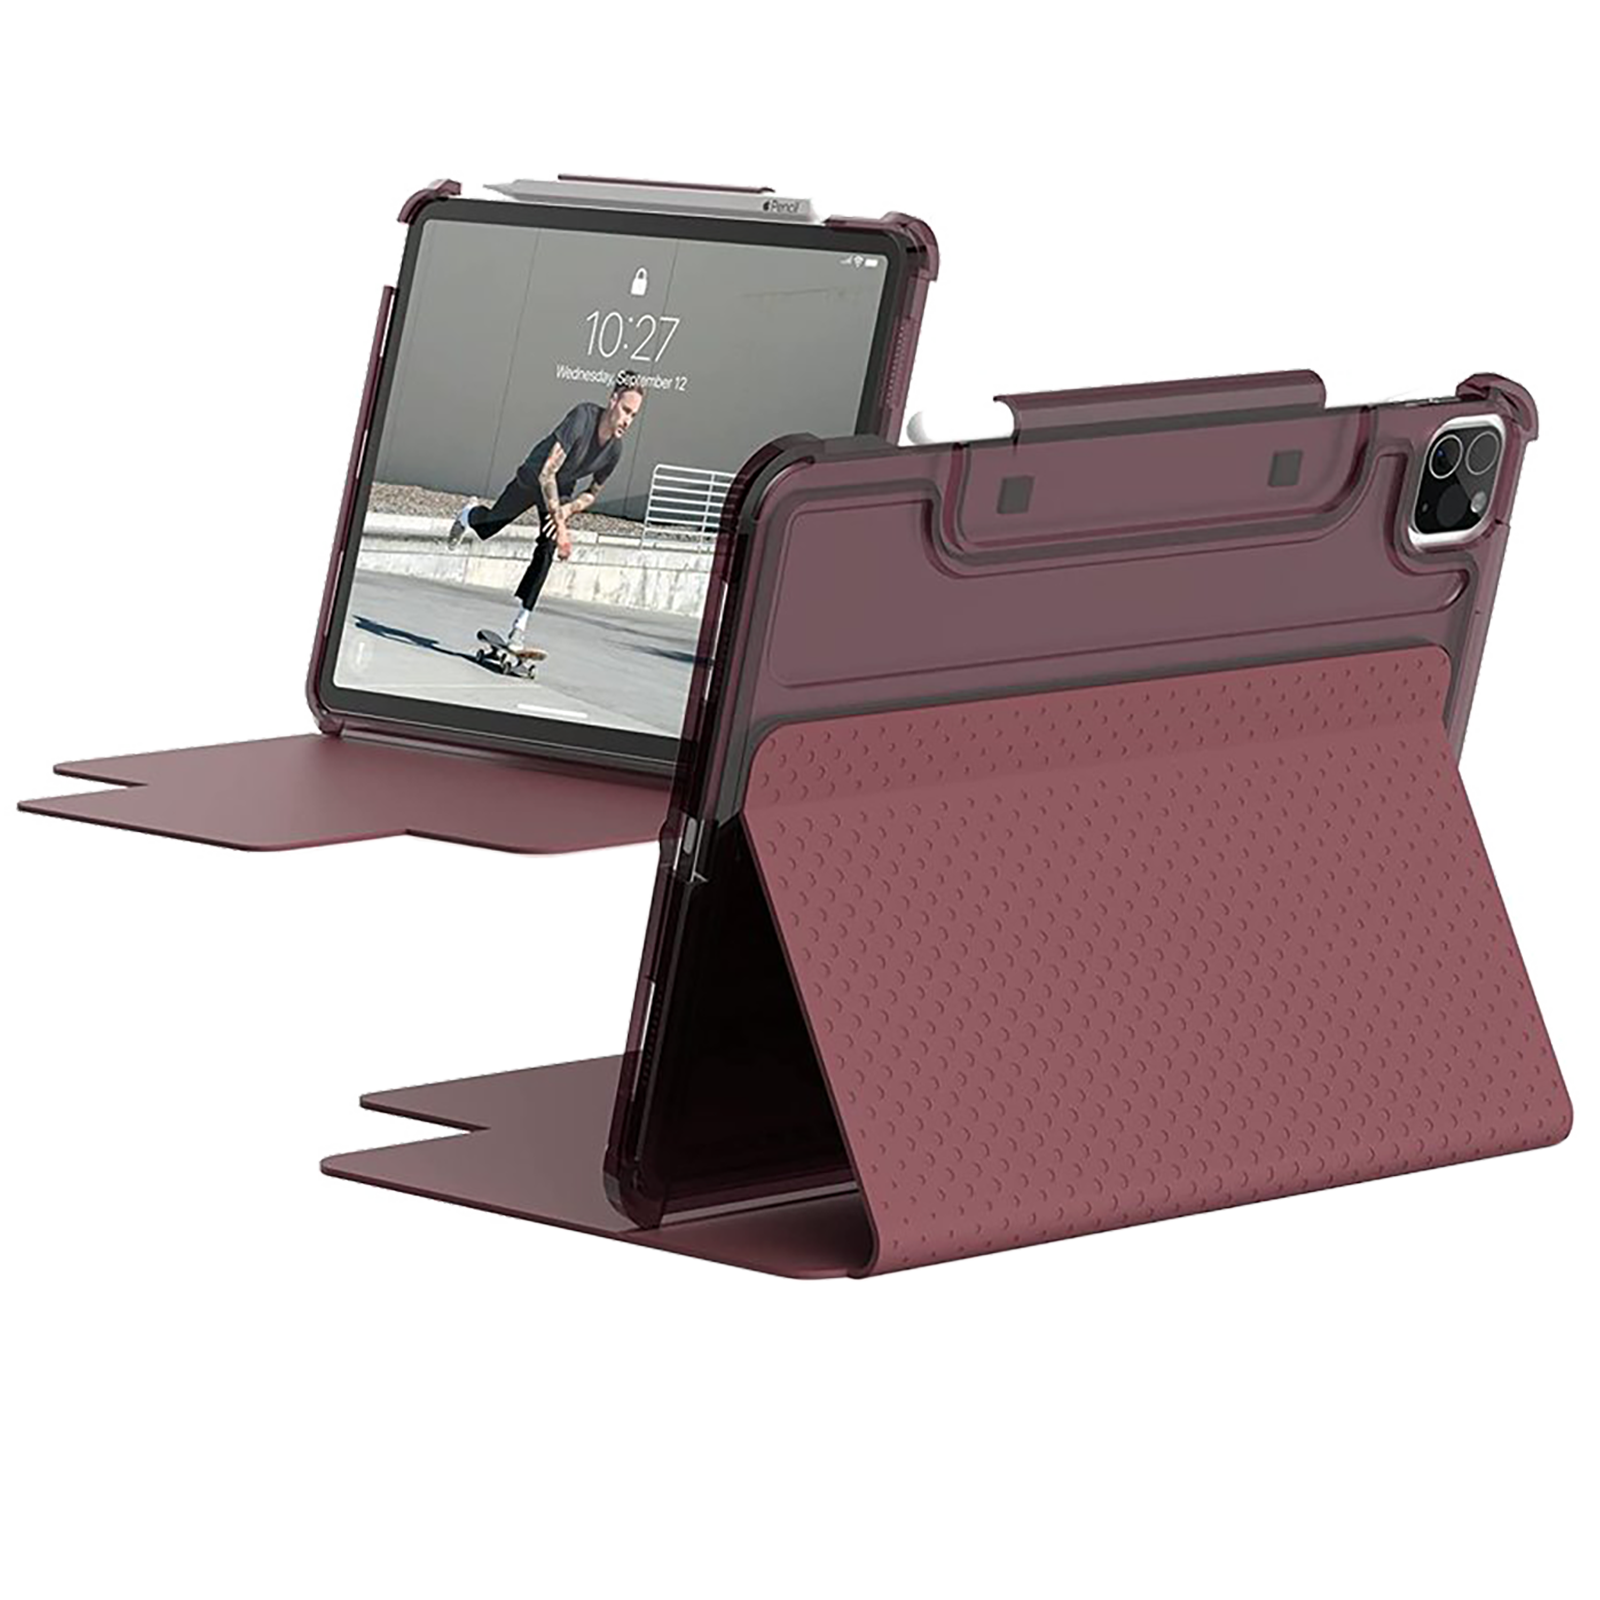 """UAG Lucent Full Cover Case For iPad Pro 11"""" (2nd Gen, 2020) (Featherlight Ultra Slim Profile, UGLU_IPD11PG3_AG_RS, Aubergine/Dusty Rose)_1"""